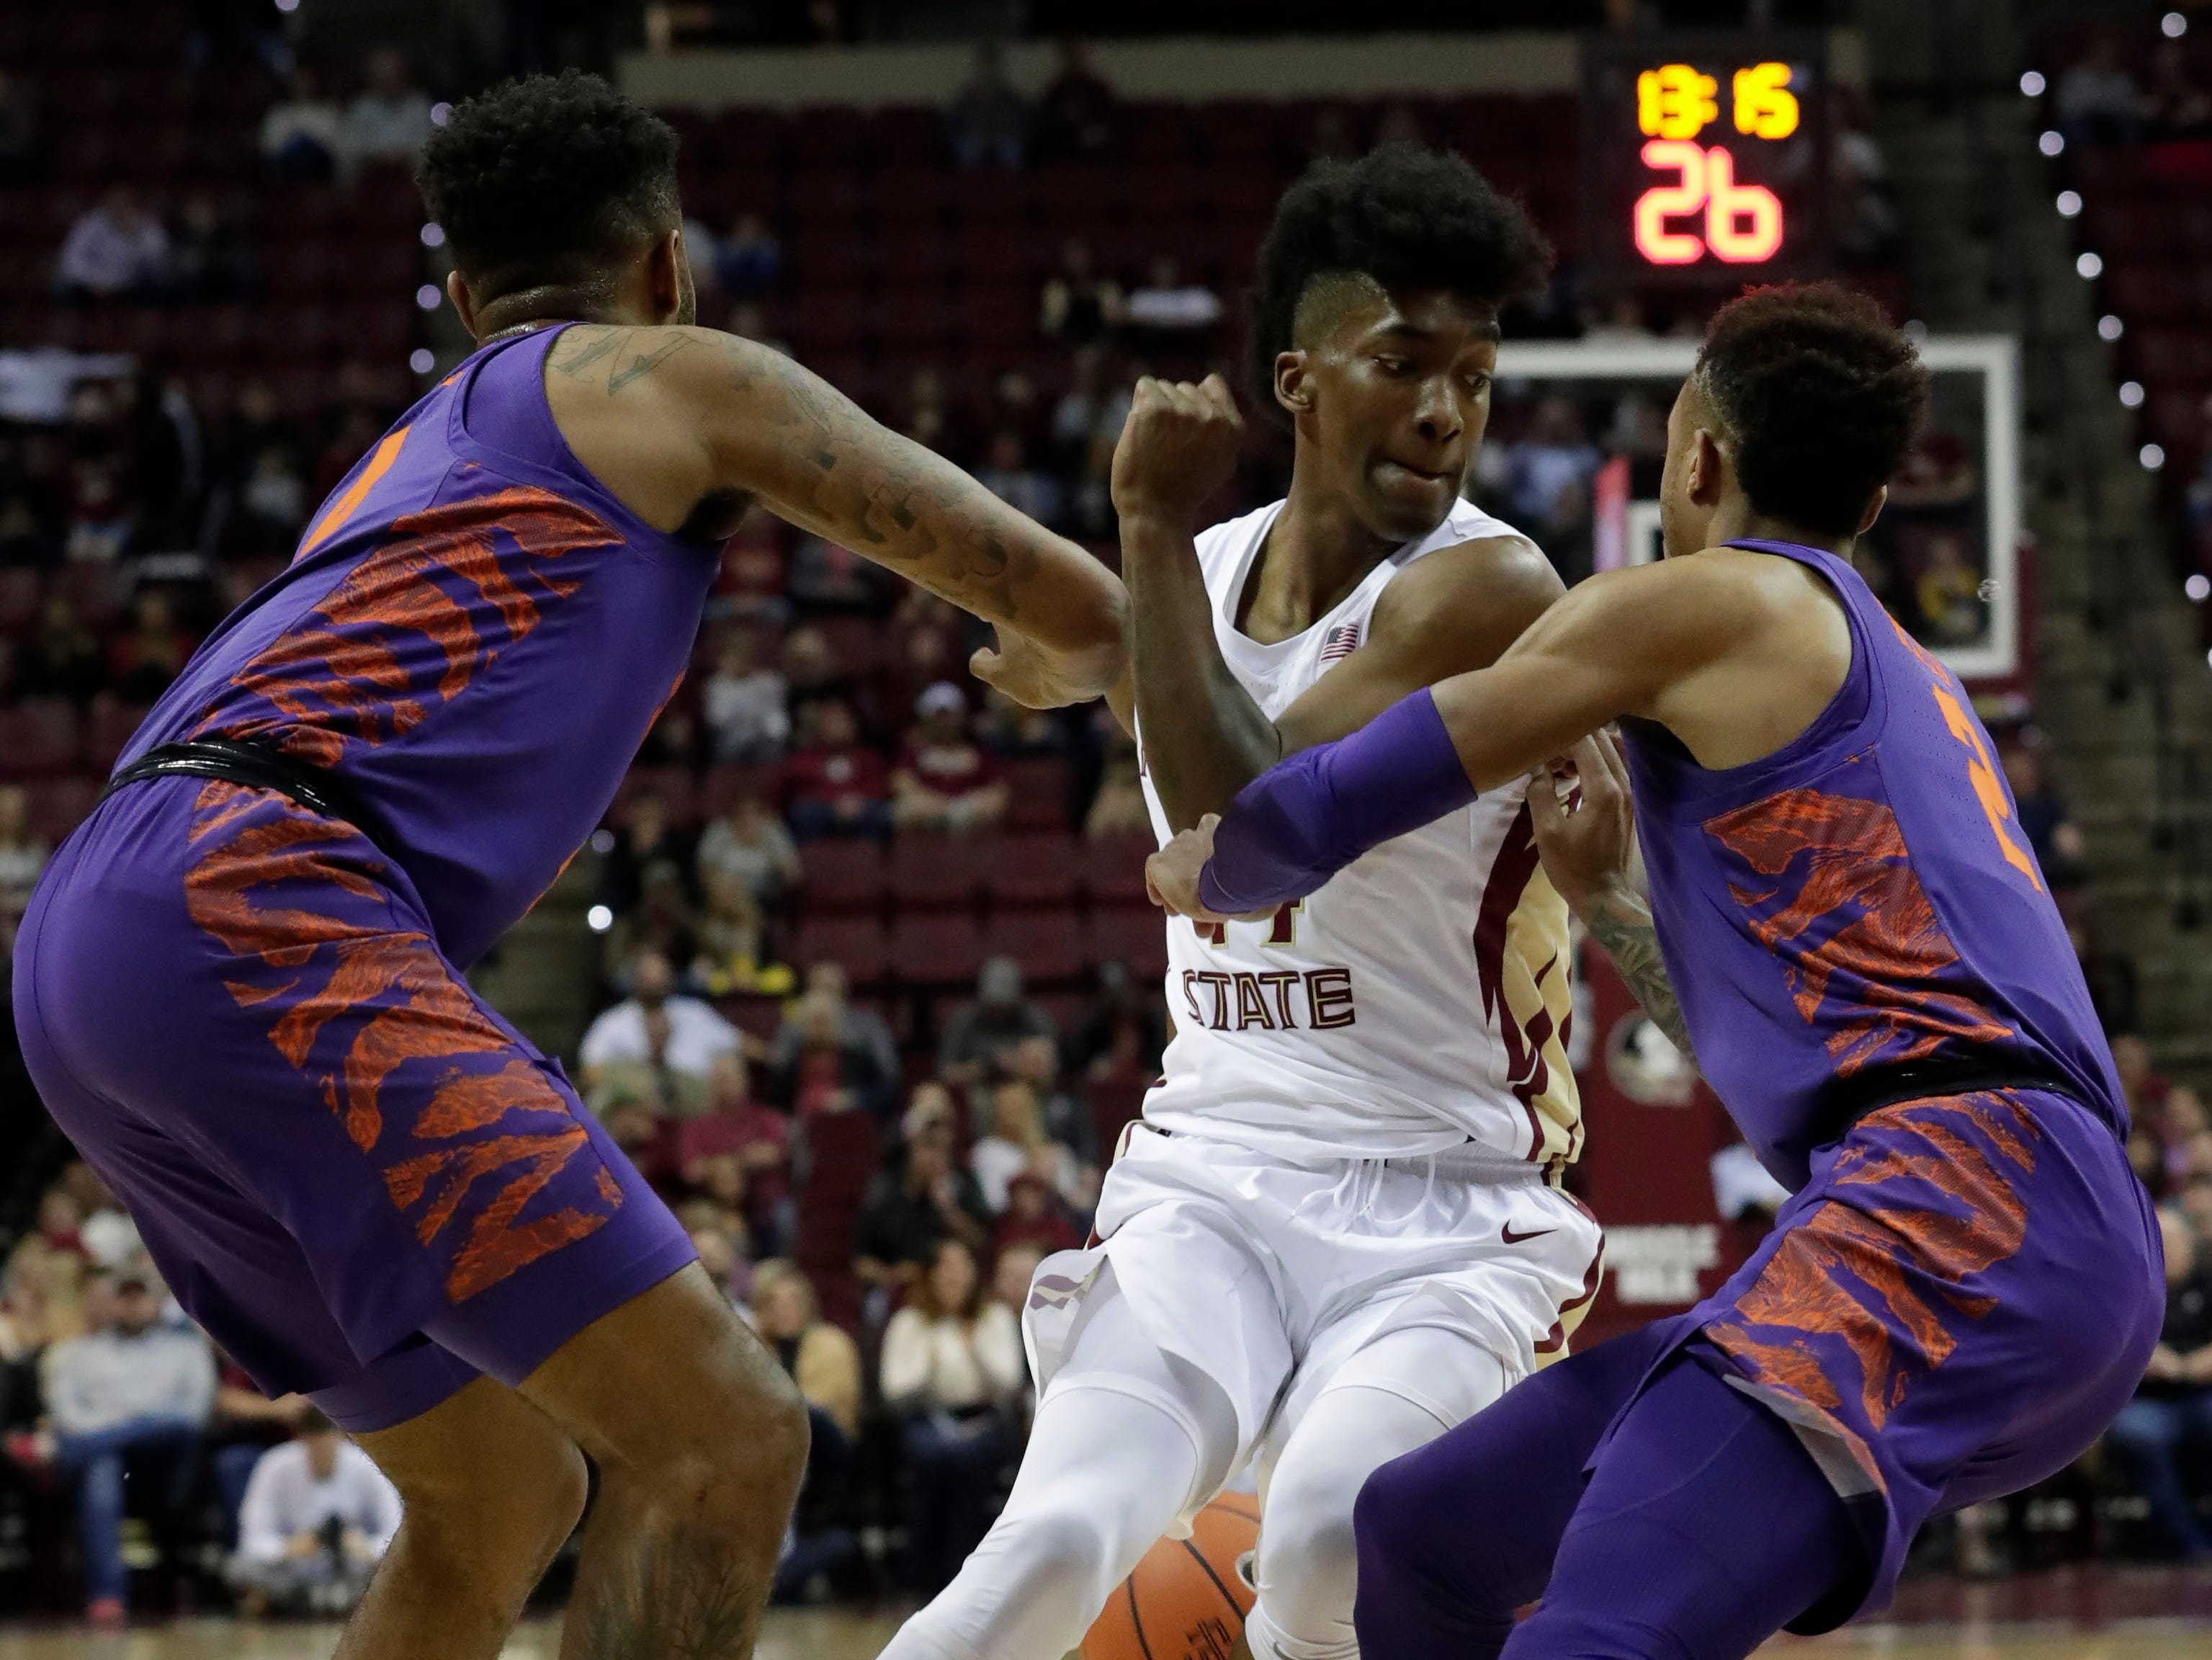 Florida State Seminoles guard Terance Mann (14) dribbles the ball behind his back while fighting off two defenders. The Florida State Seminoles face off against the Clemson Tigers at the Tucker Civic Center, Tuesday, Jan. 22, 2019.